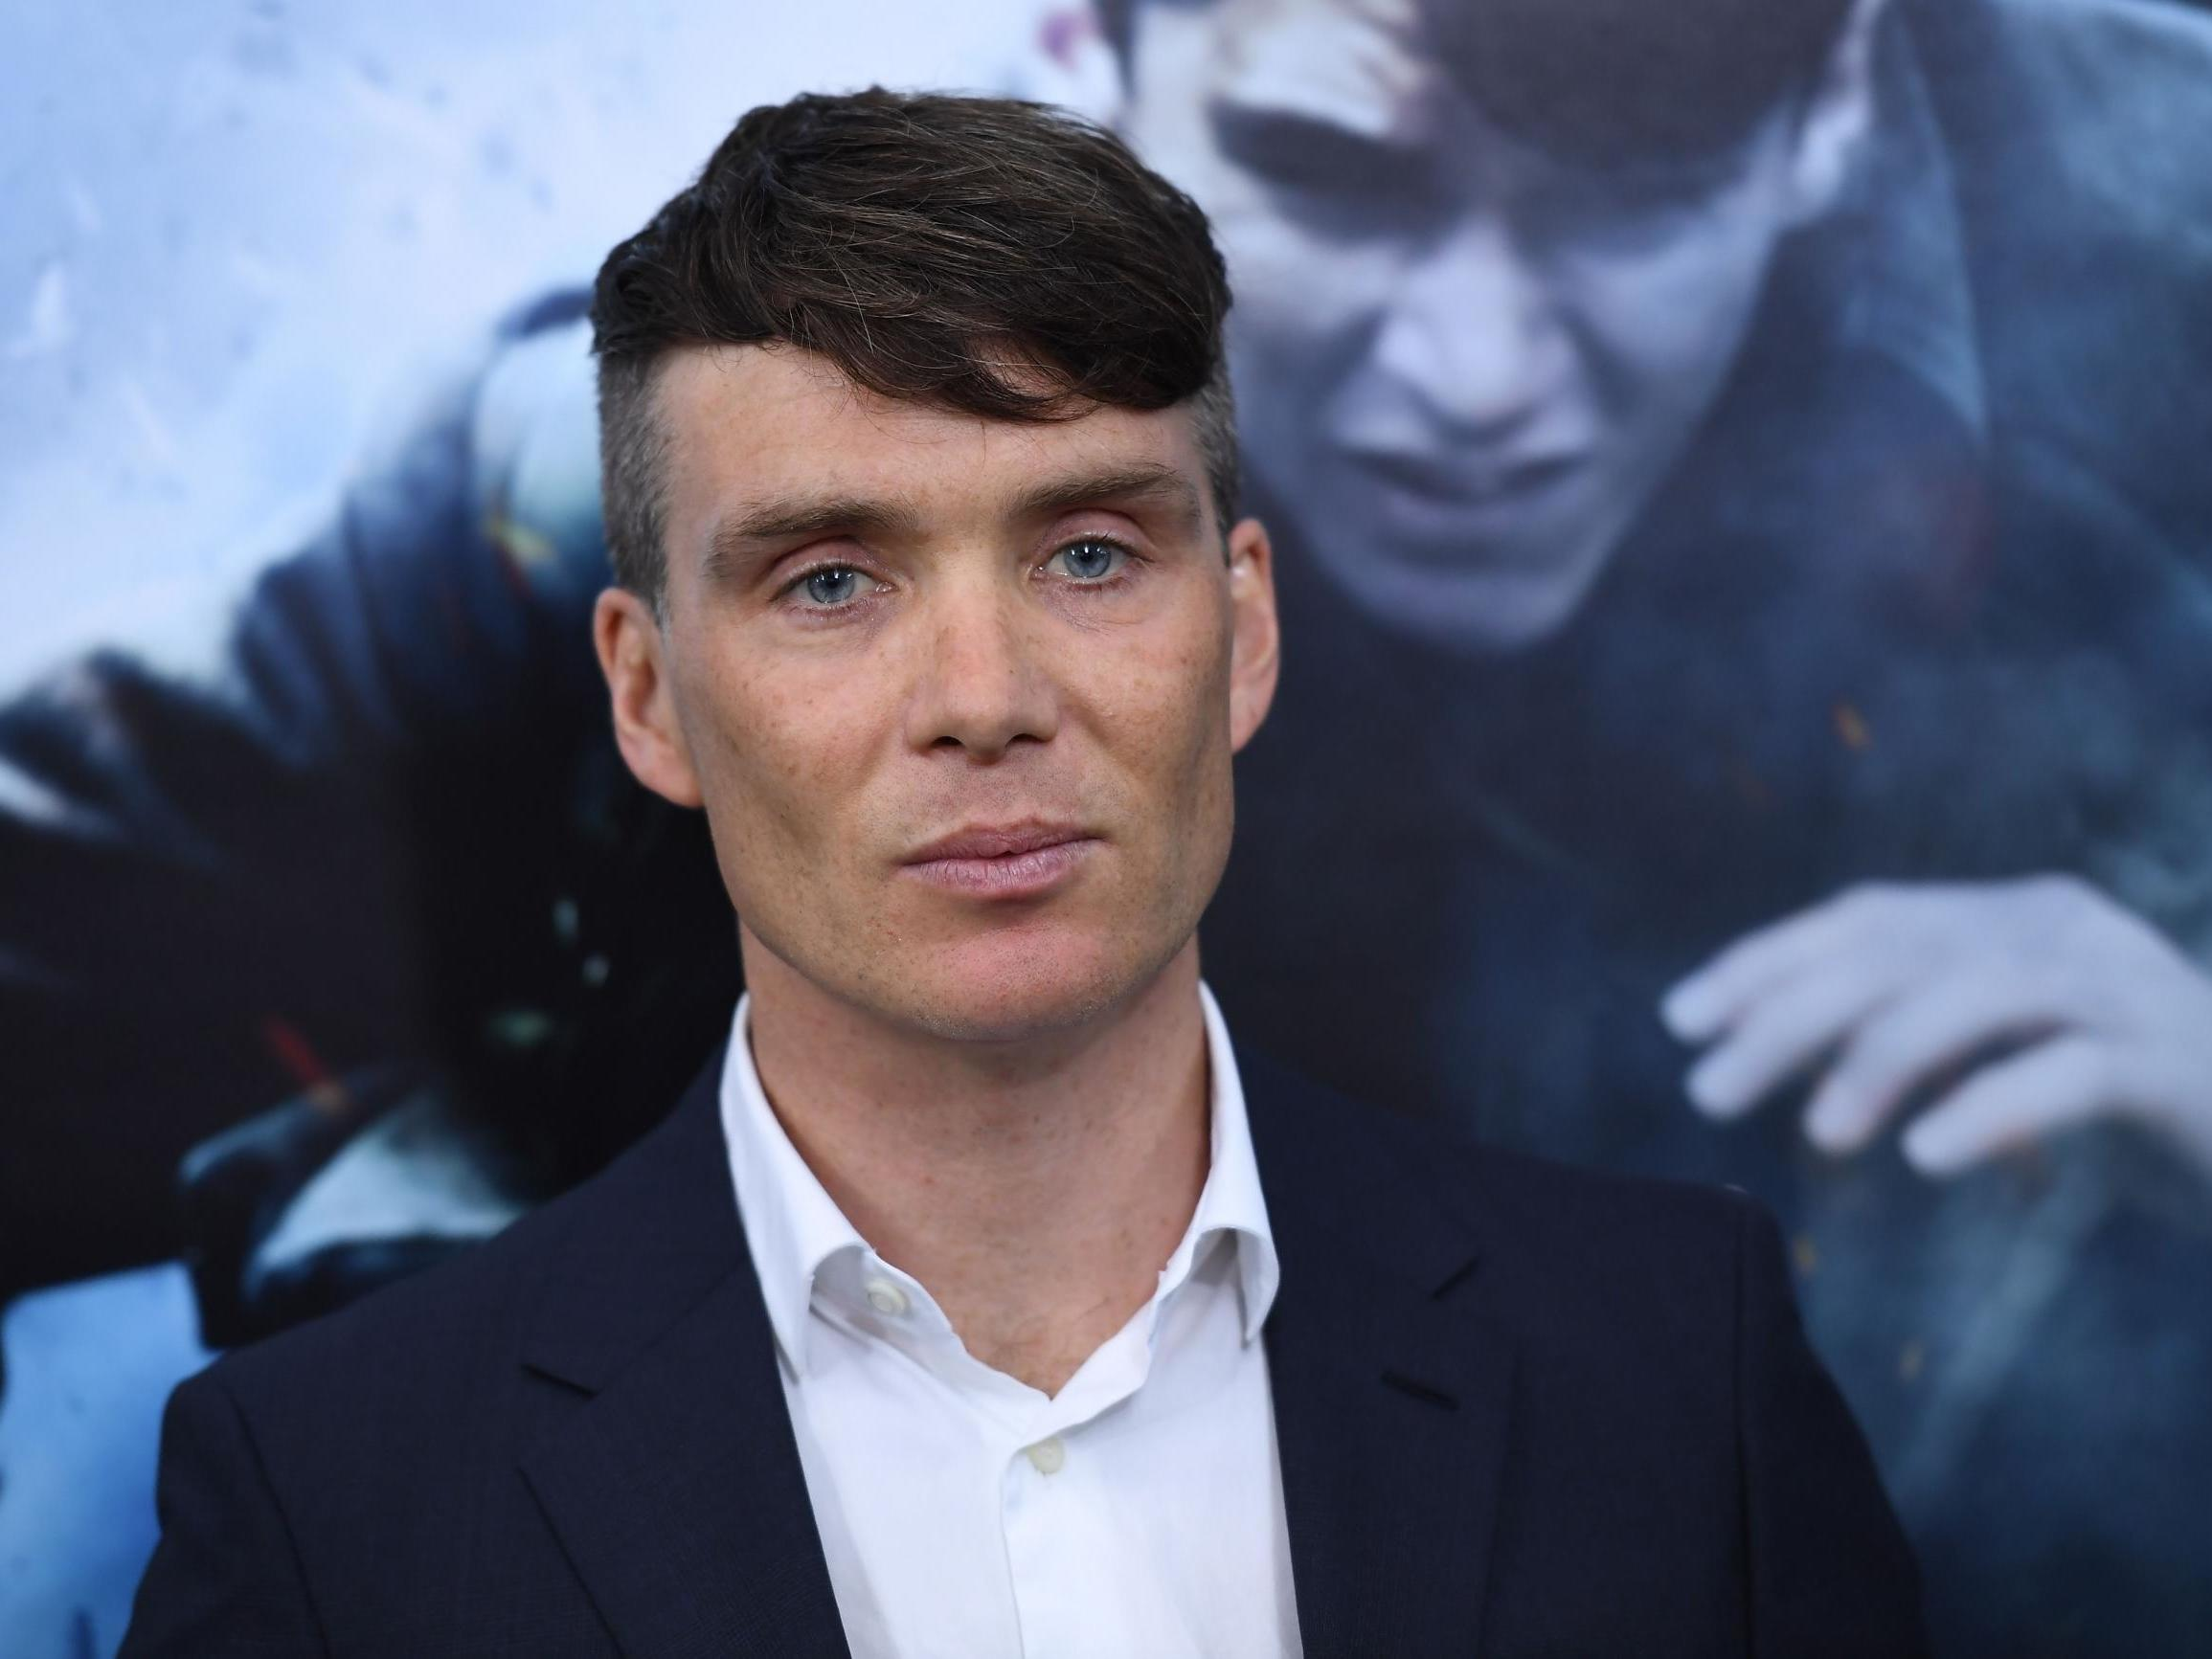 Peaky Blinders star Cillian Murphy says next James Bond 'should be a…